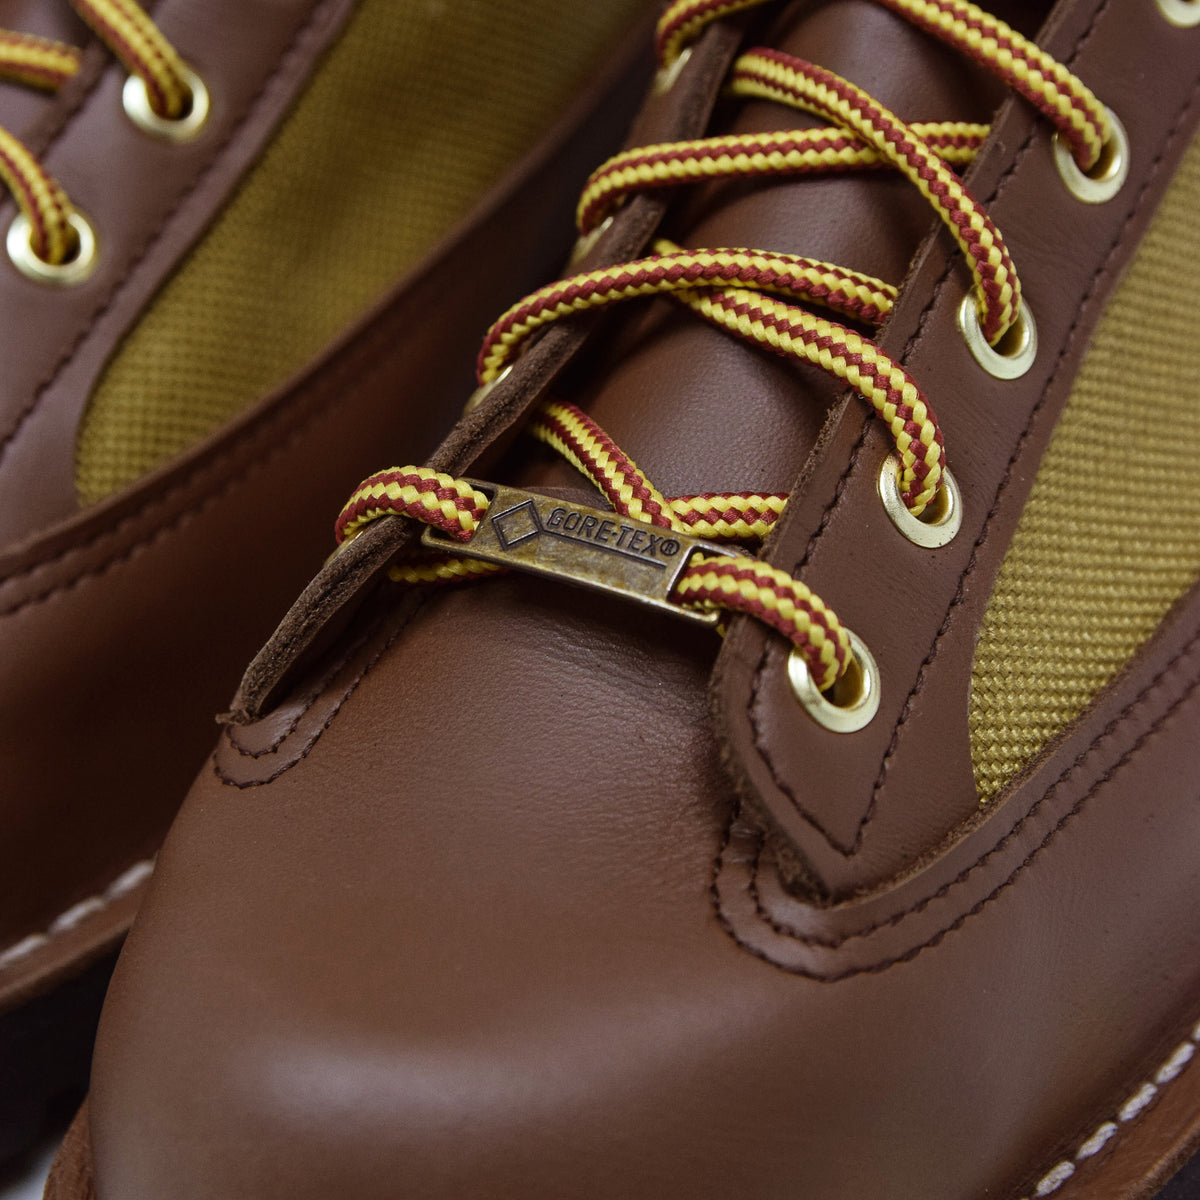 Danner Light Leather And Nylon Gore-Tex Boot Khaki Gore-Tex